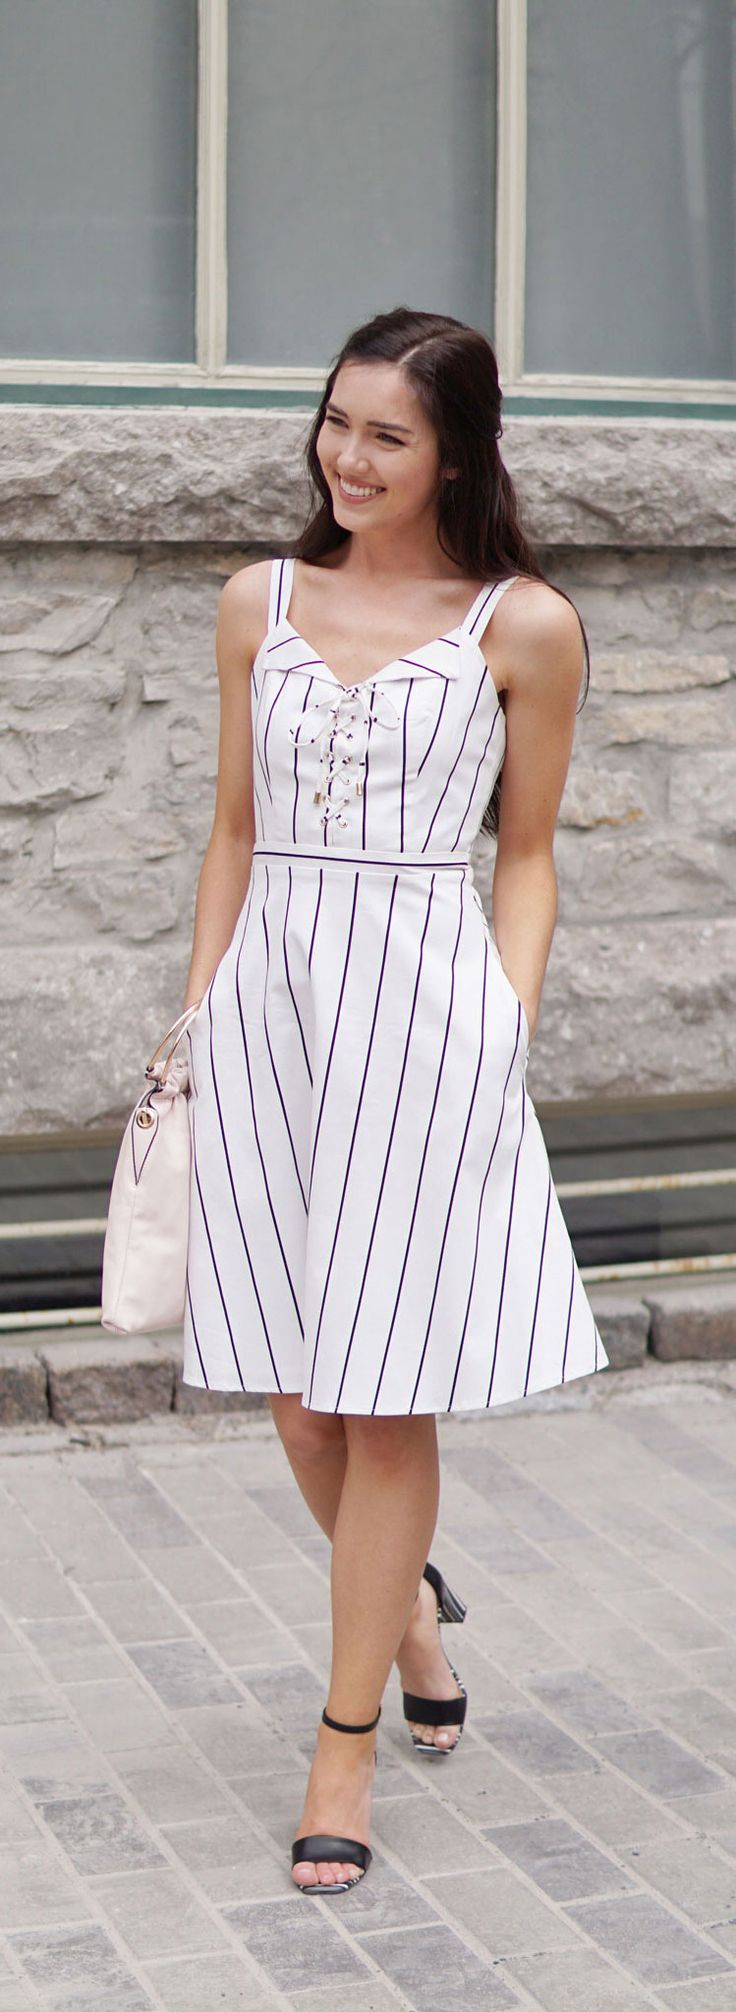 STRIPES ON STRIPES HEAVEN!! This stripe midi dress is perfection for any wedding or event or even just running errands, I can't get enough of it!! And paired with extra stripes on the sandals: fashionable AND comfortable! Le Chateau does it best! ALL DETAILS WHEN YOU CLICK ON THE PHOTO! #fashion #outfit #style #springoutfit #fashionblog #stripes by Marie's Bazaar